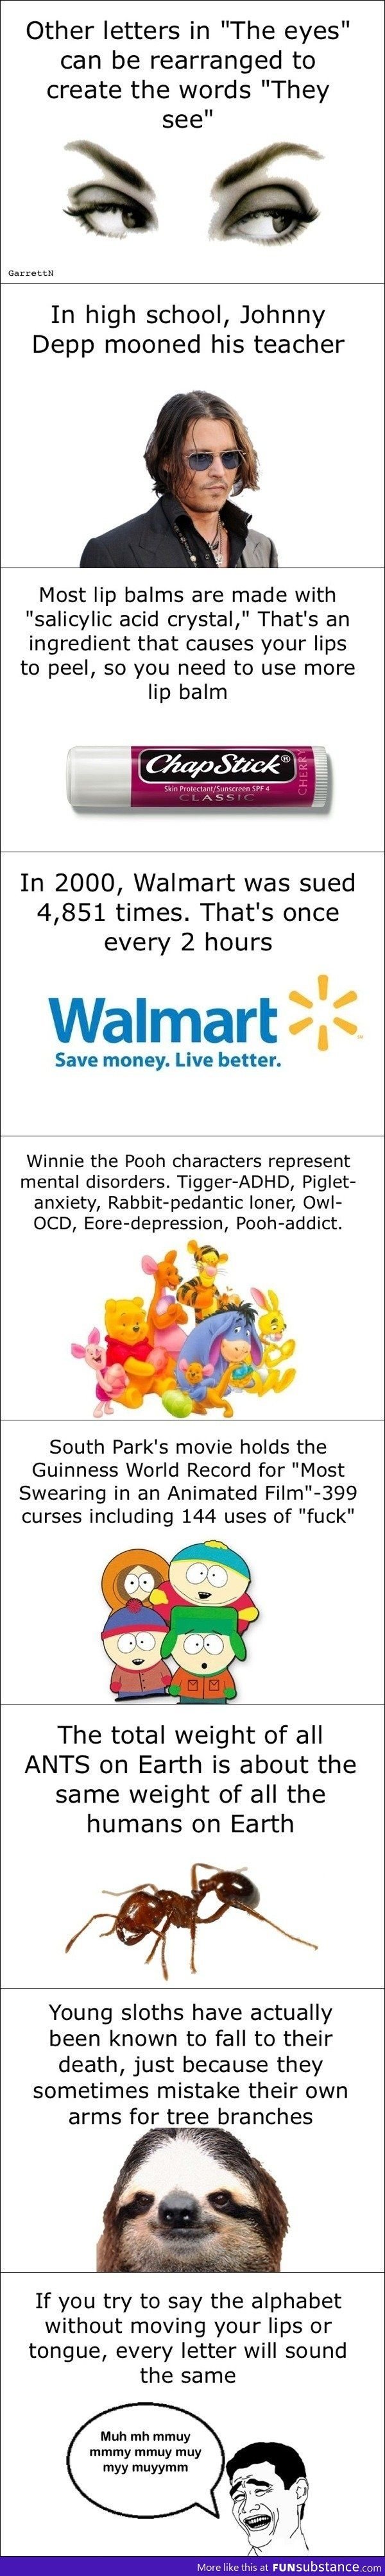 """Mind Blowing Facts."" These are the most mind-numbing, pointless tidbits I've ever encountered, anywhere. They're also wrong: no, A. A. Milne did not write Winnie as a poster child for addiction. I'm going to go listen to ""Return to Pooh's Corner"" until that's washed right out of my mind."